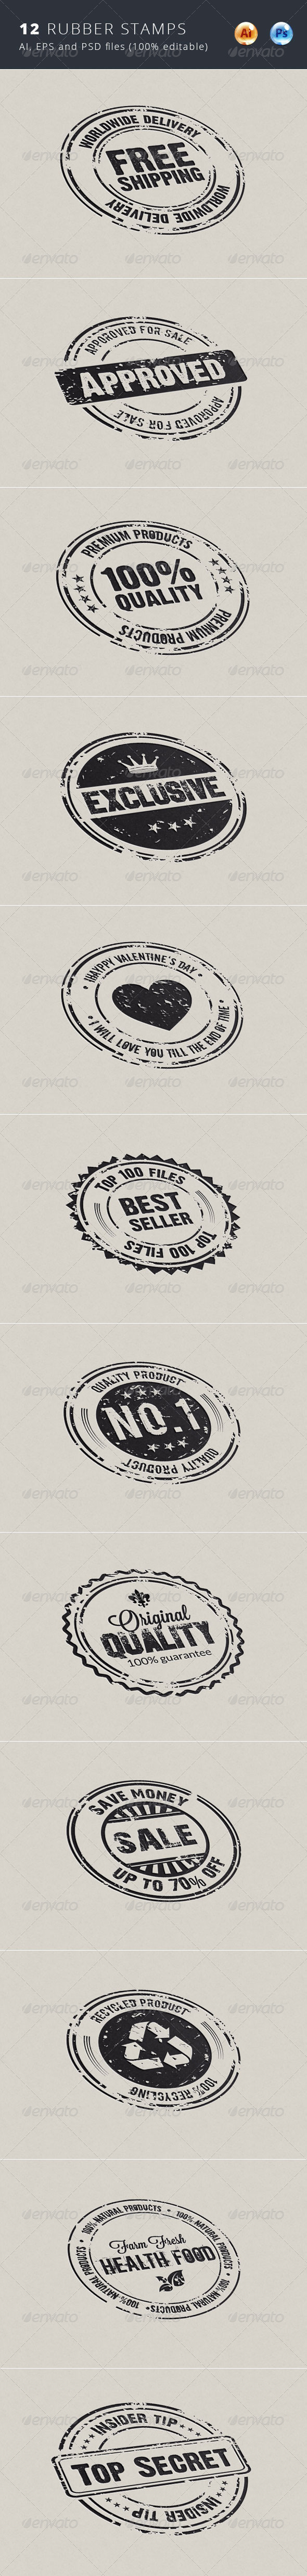 GraphicRiver 12 Rubber Stamps 6742070